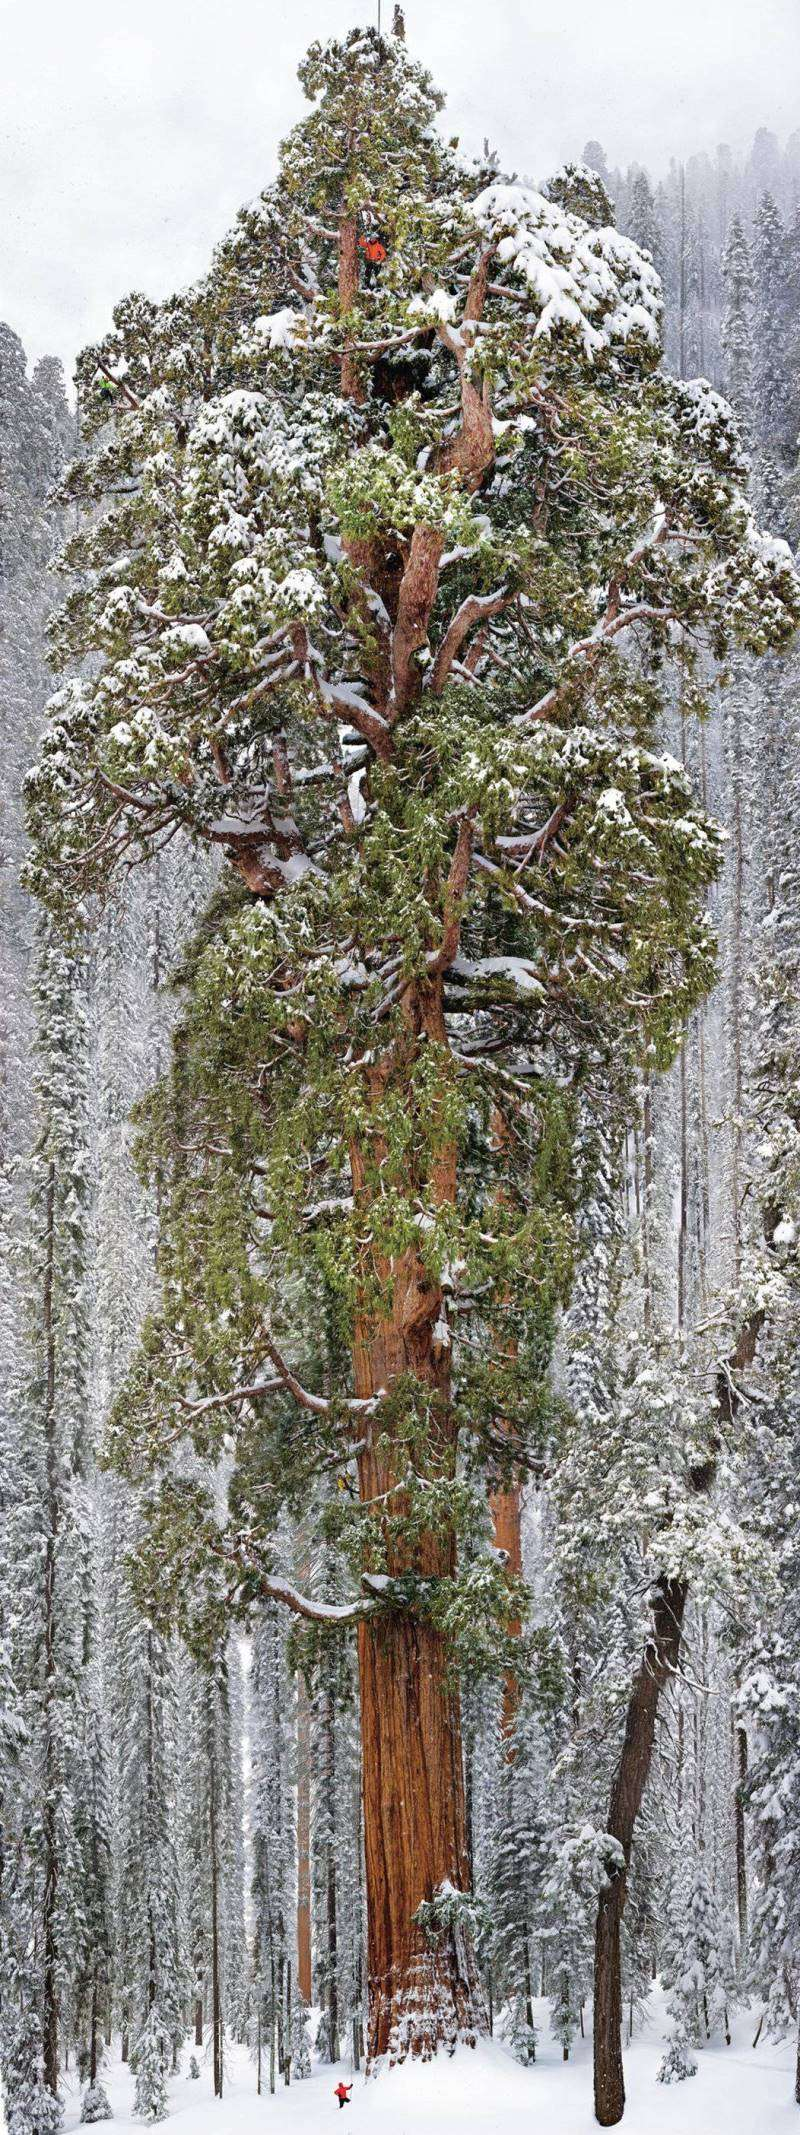 3200-year-old-tree-sequoia-national-park_R